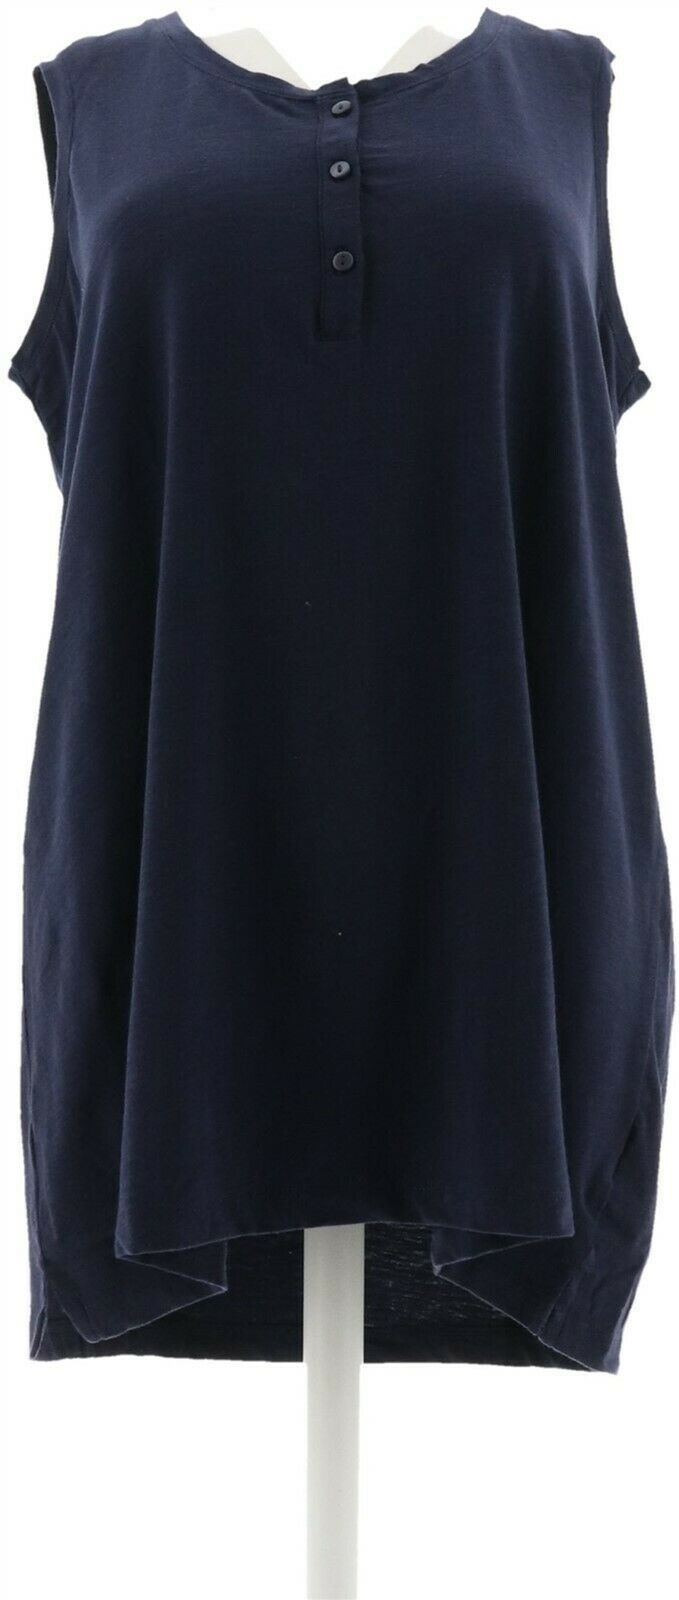 Primary image for Denim & Co Essentials Slvless Textured Knit Henley Top Navy L NEW A305036